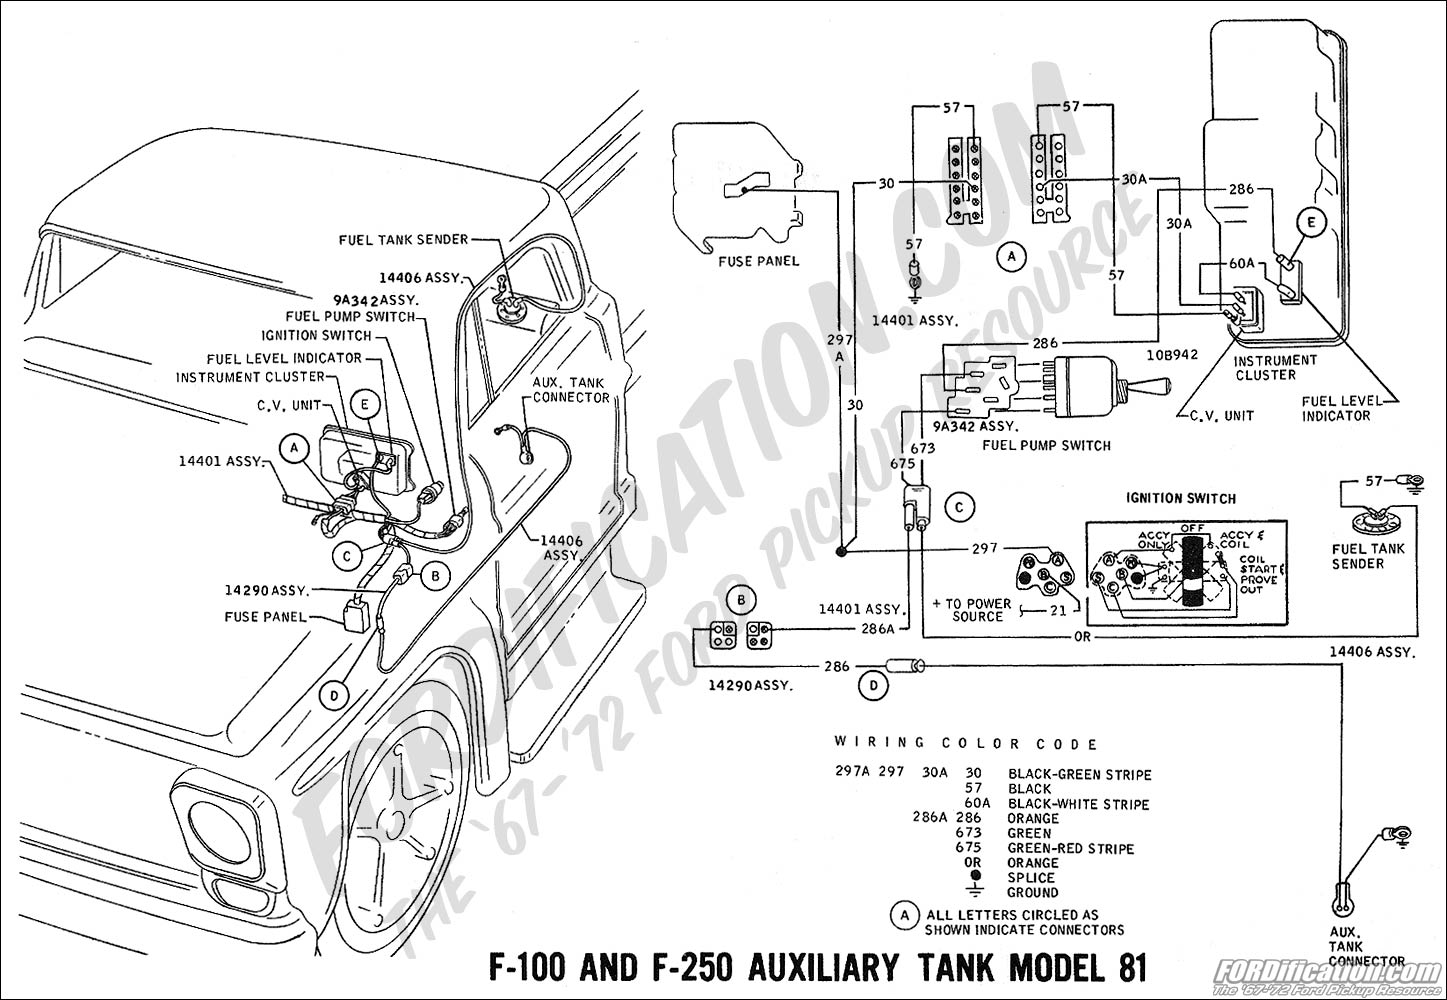 71 F100 Fuse Box on 1999 Ford F150 Fuse Panel Layout